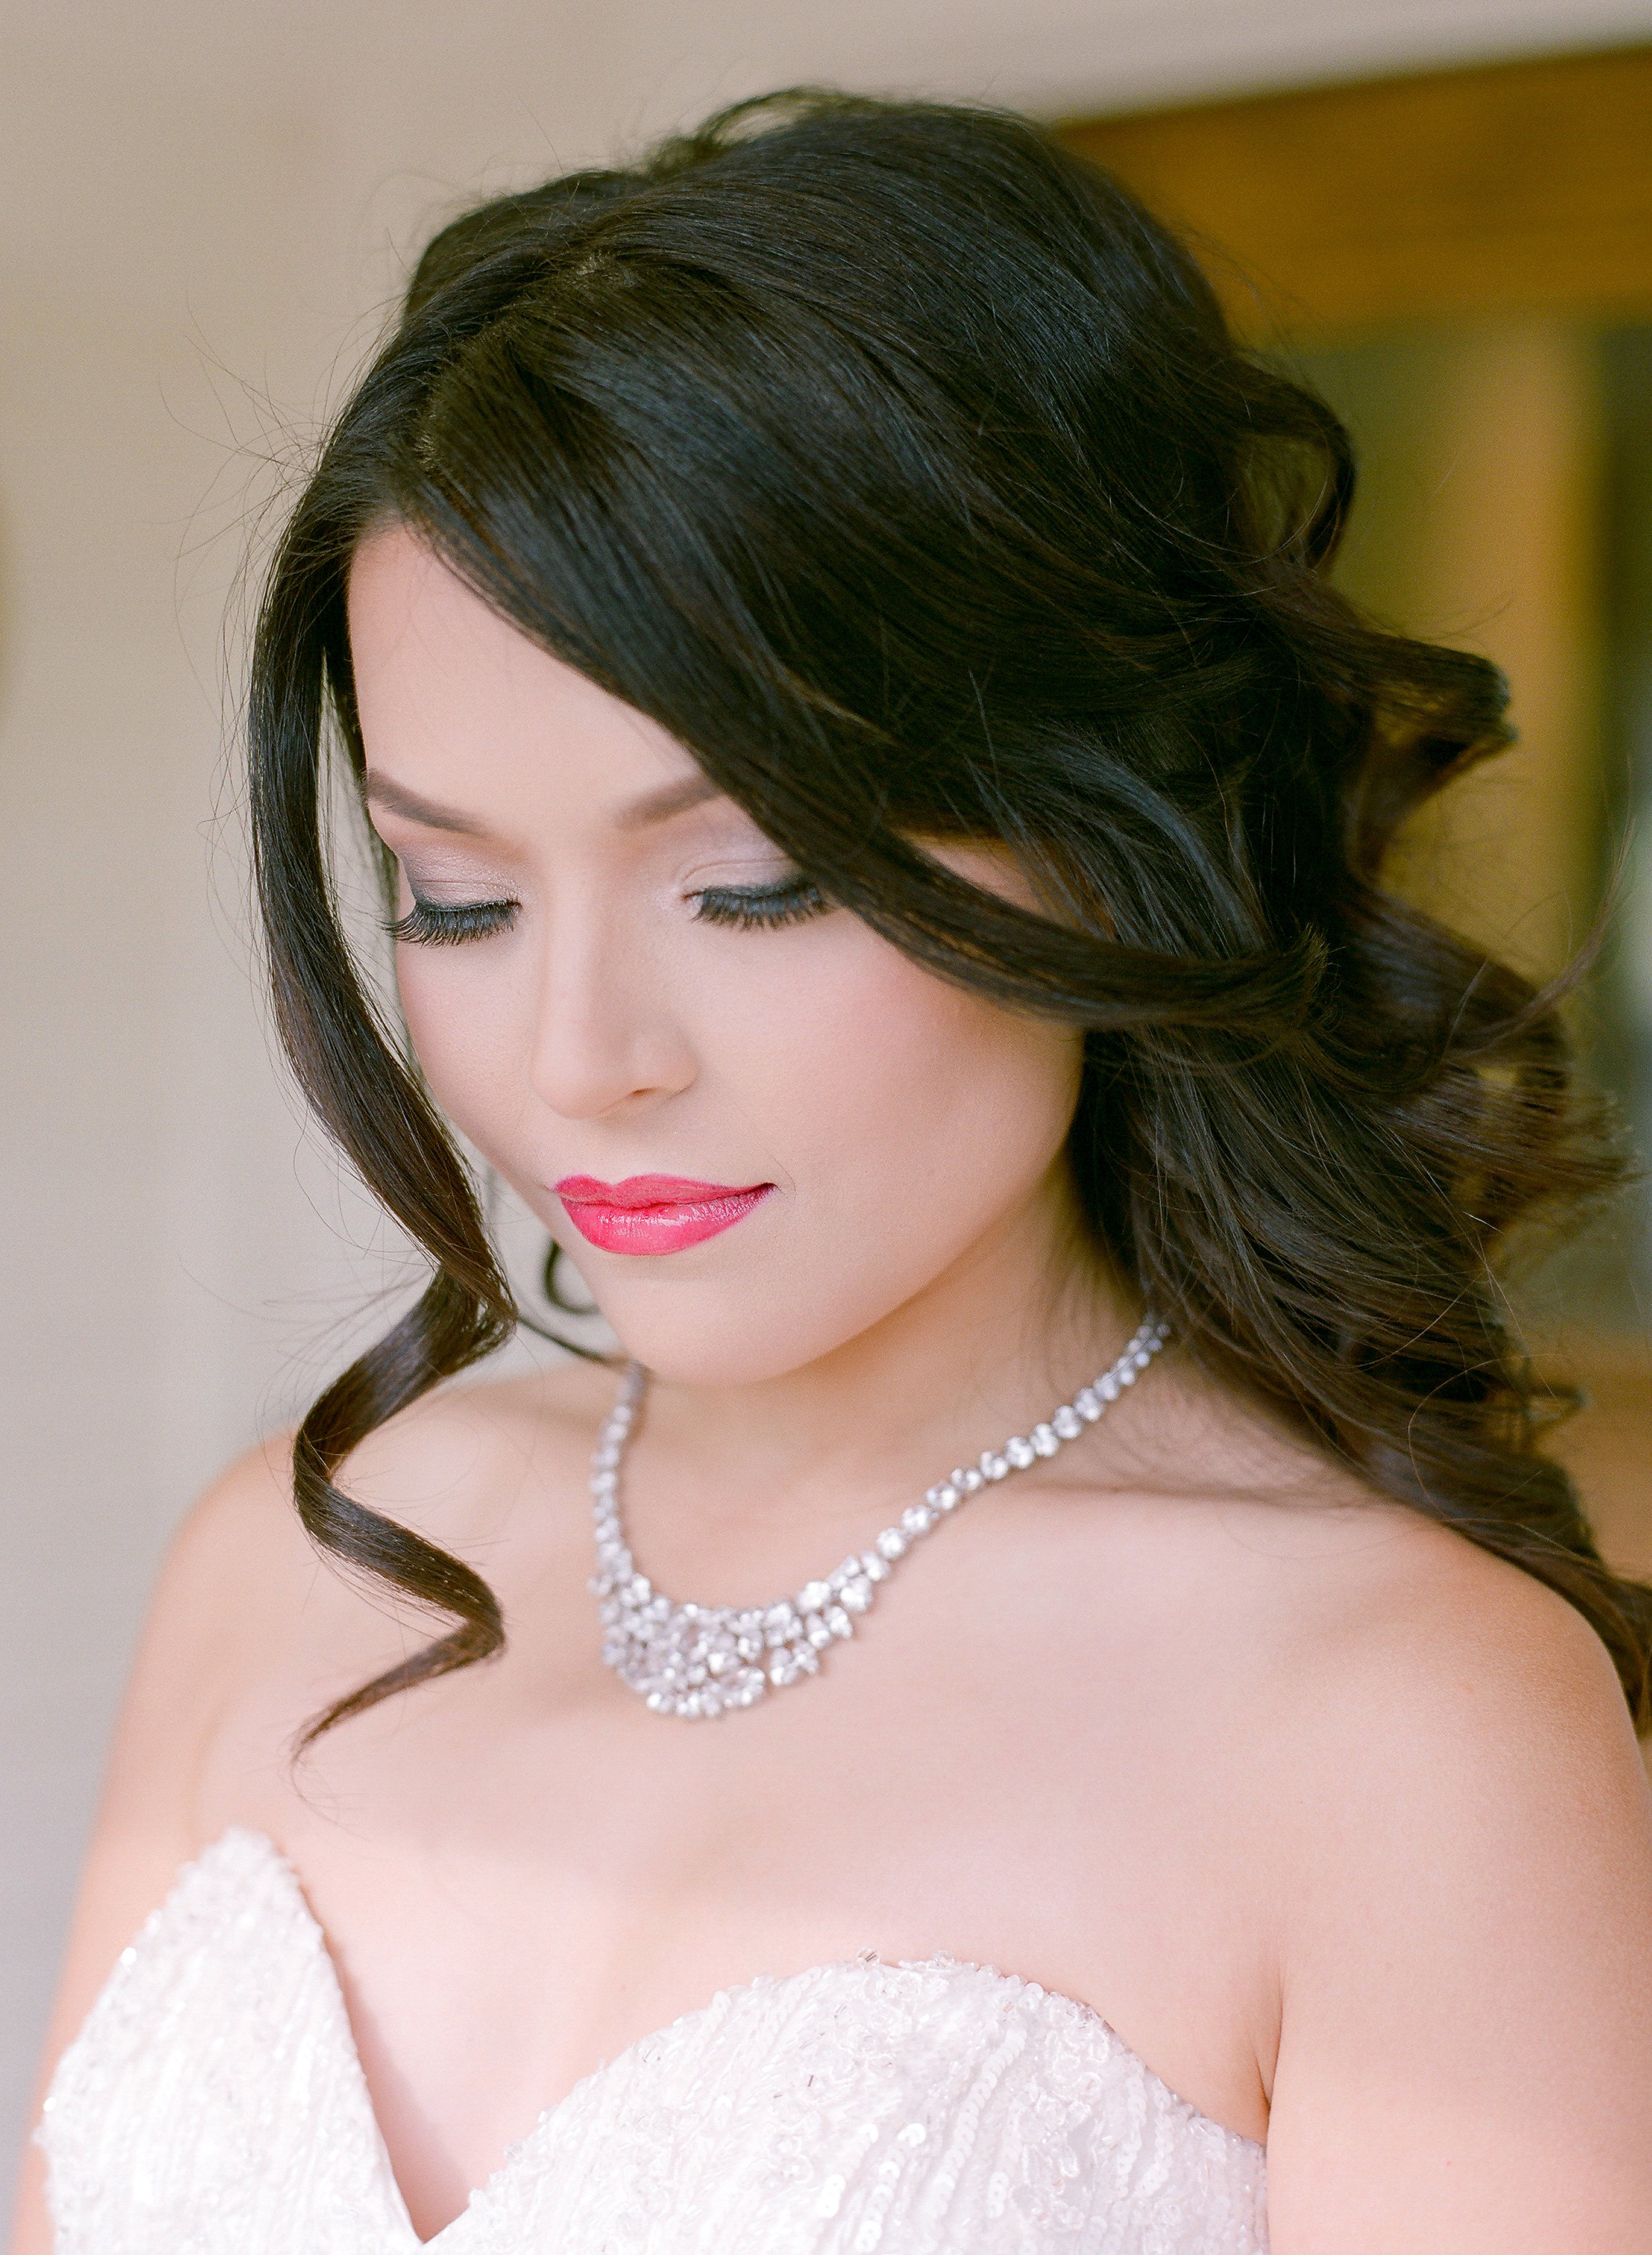 Amador_County_Wedding_Glamorous_Bride_Hair_Makeup_Jewelry_Summer_Outdoor_Evening_Rancho_Victoria_Vineyard_Northern_California.jpg